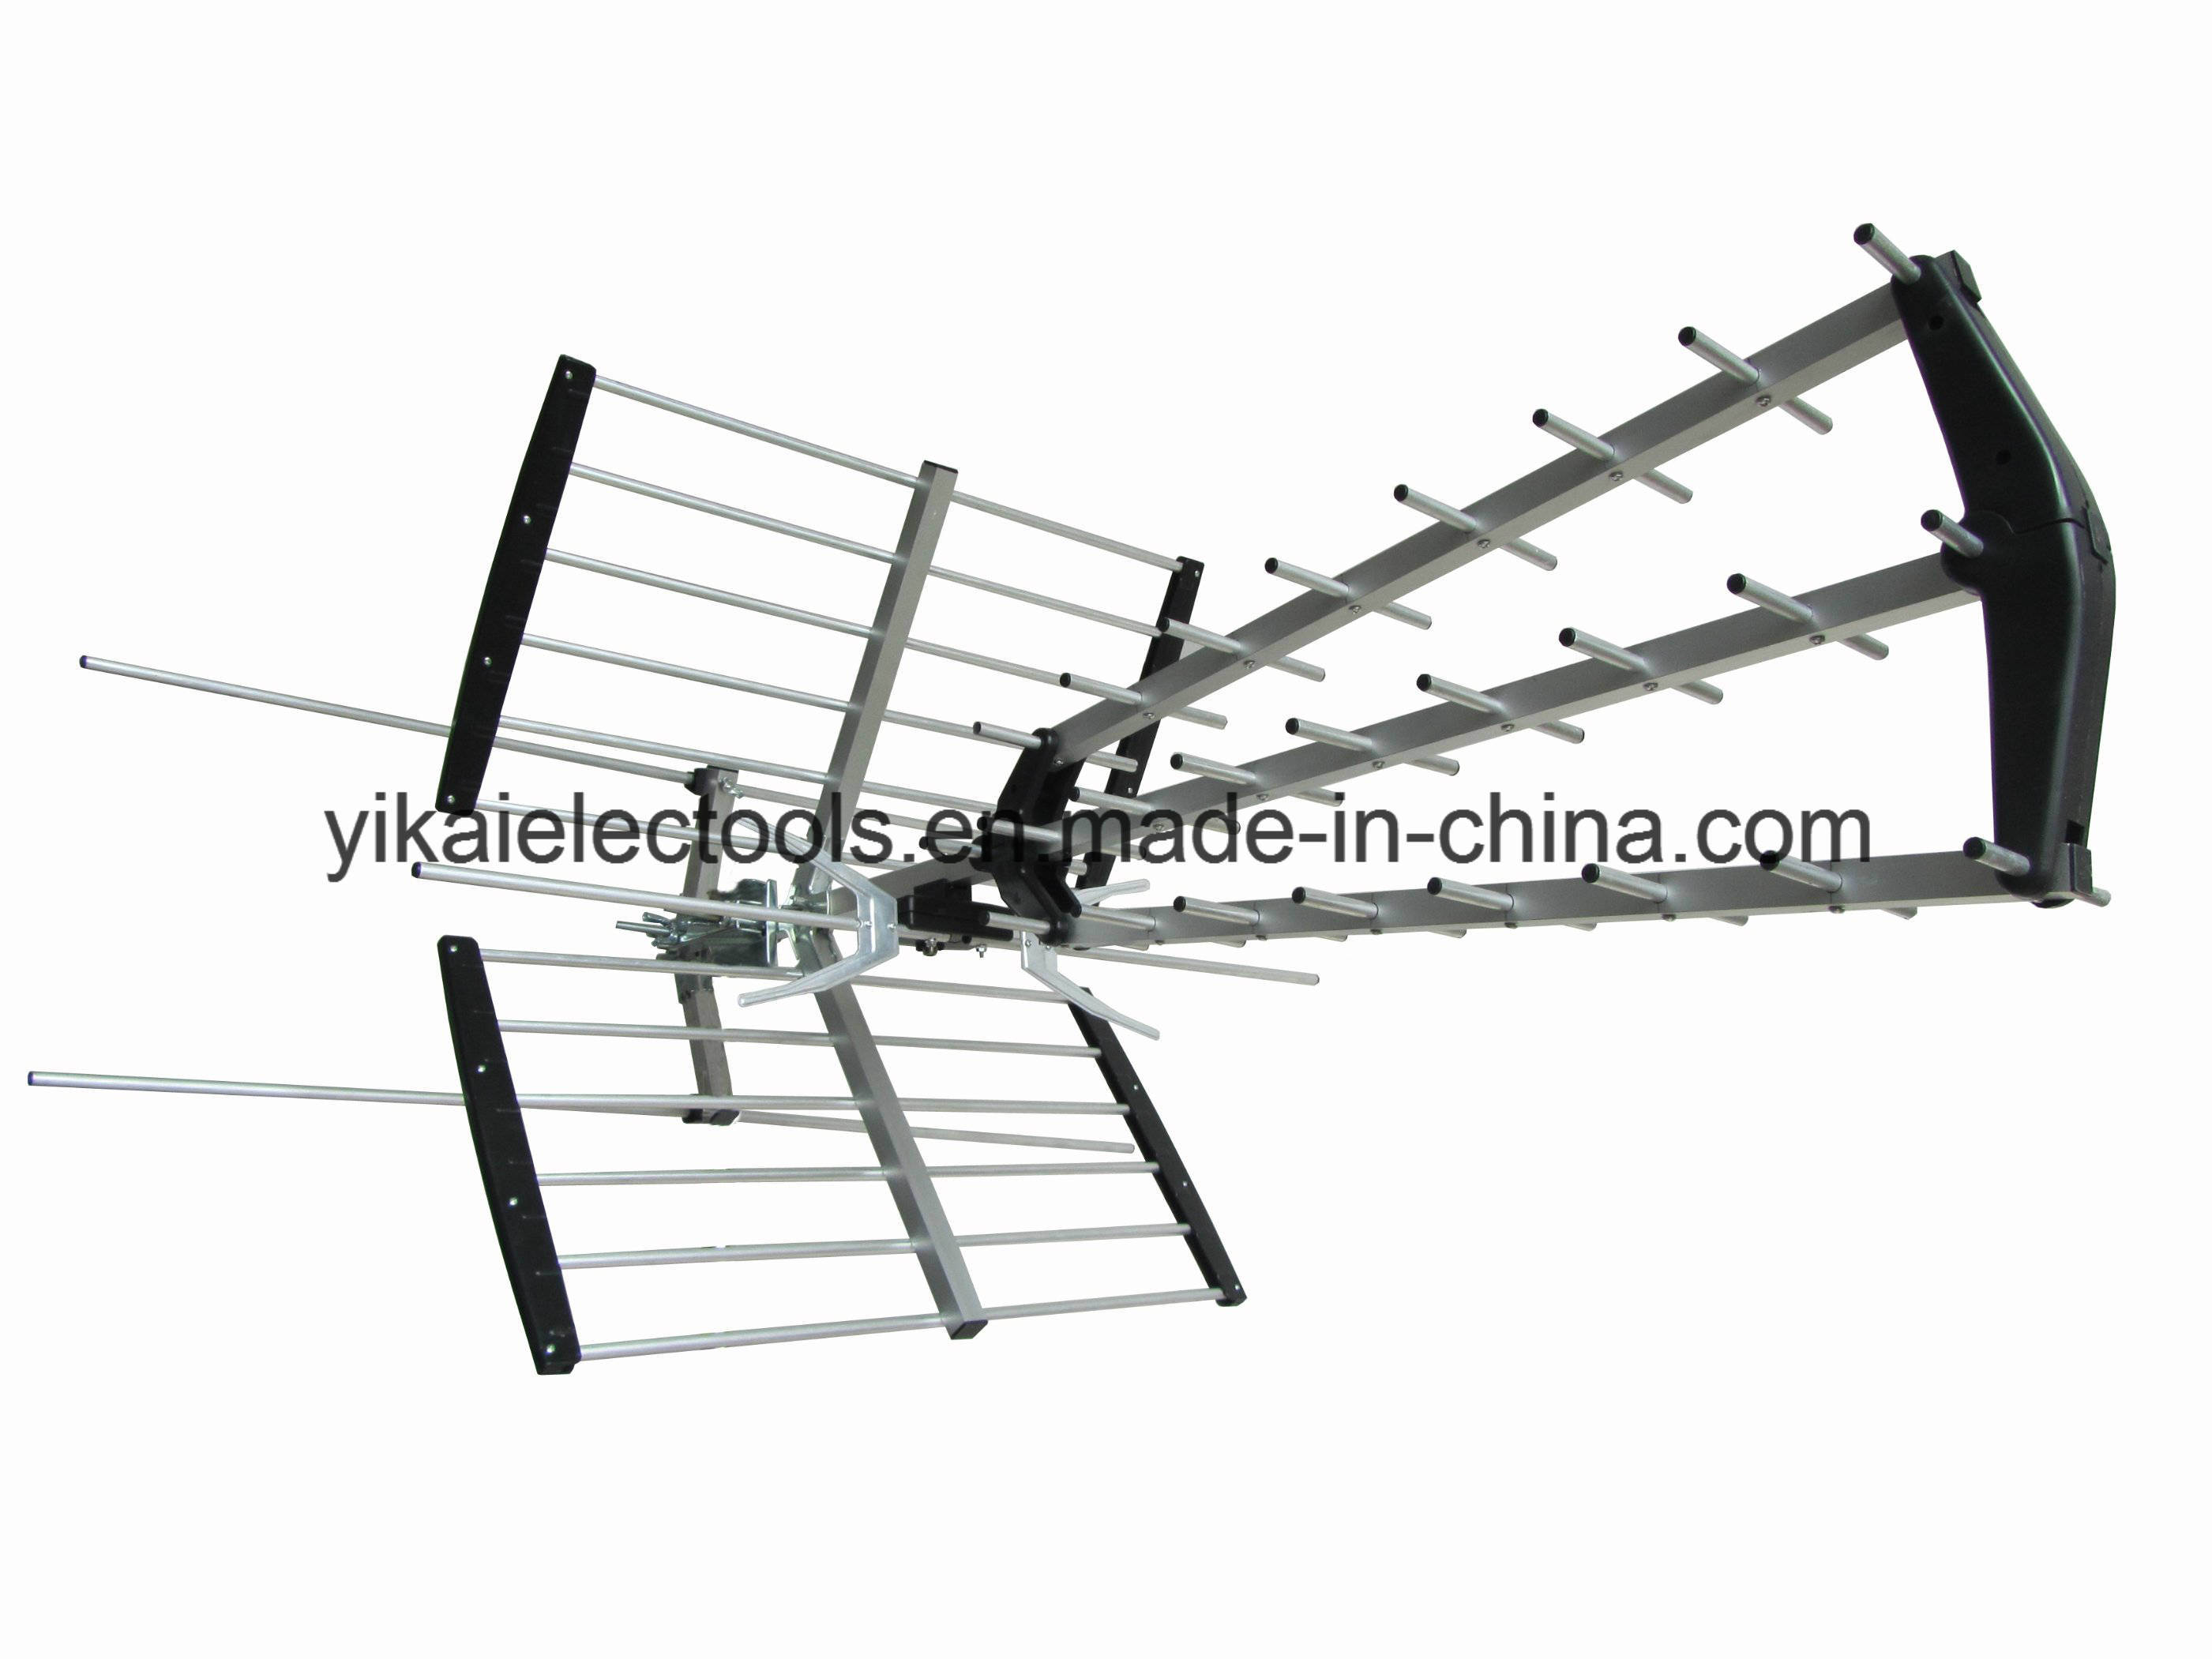 Directional HD Digital Outdoor TV Antenna with Free 4G Lte